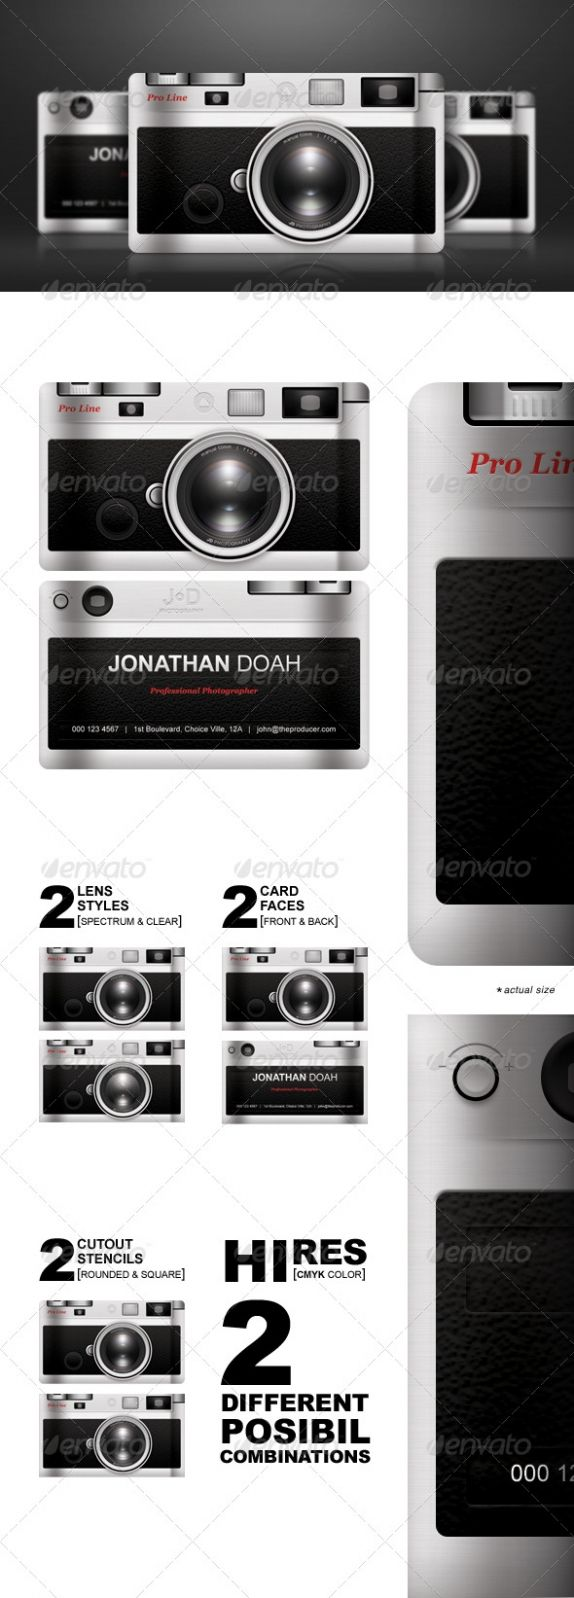 51 best Business Card images on Pinterest | Business cards ...